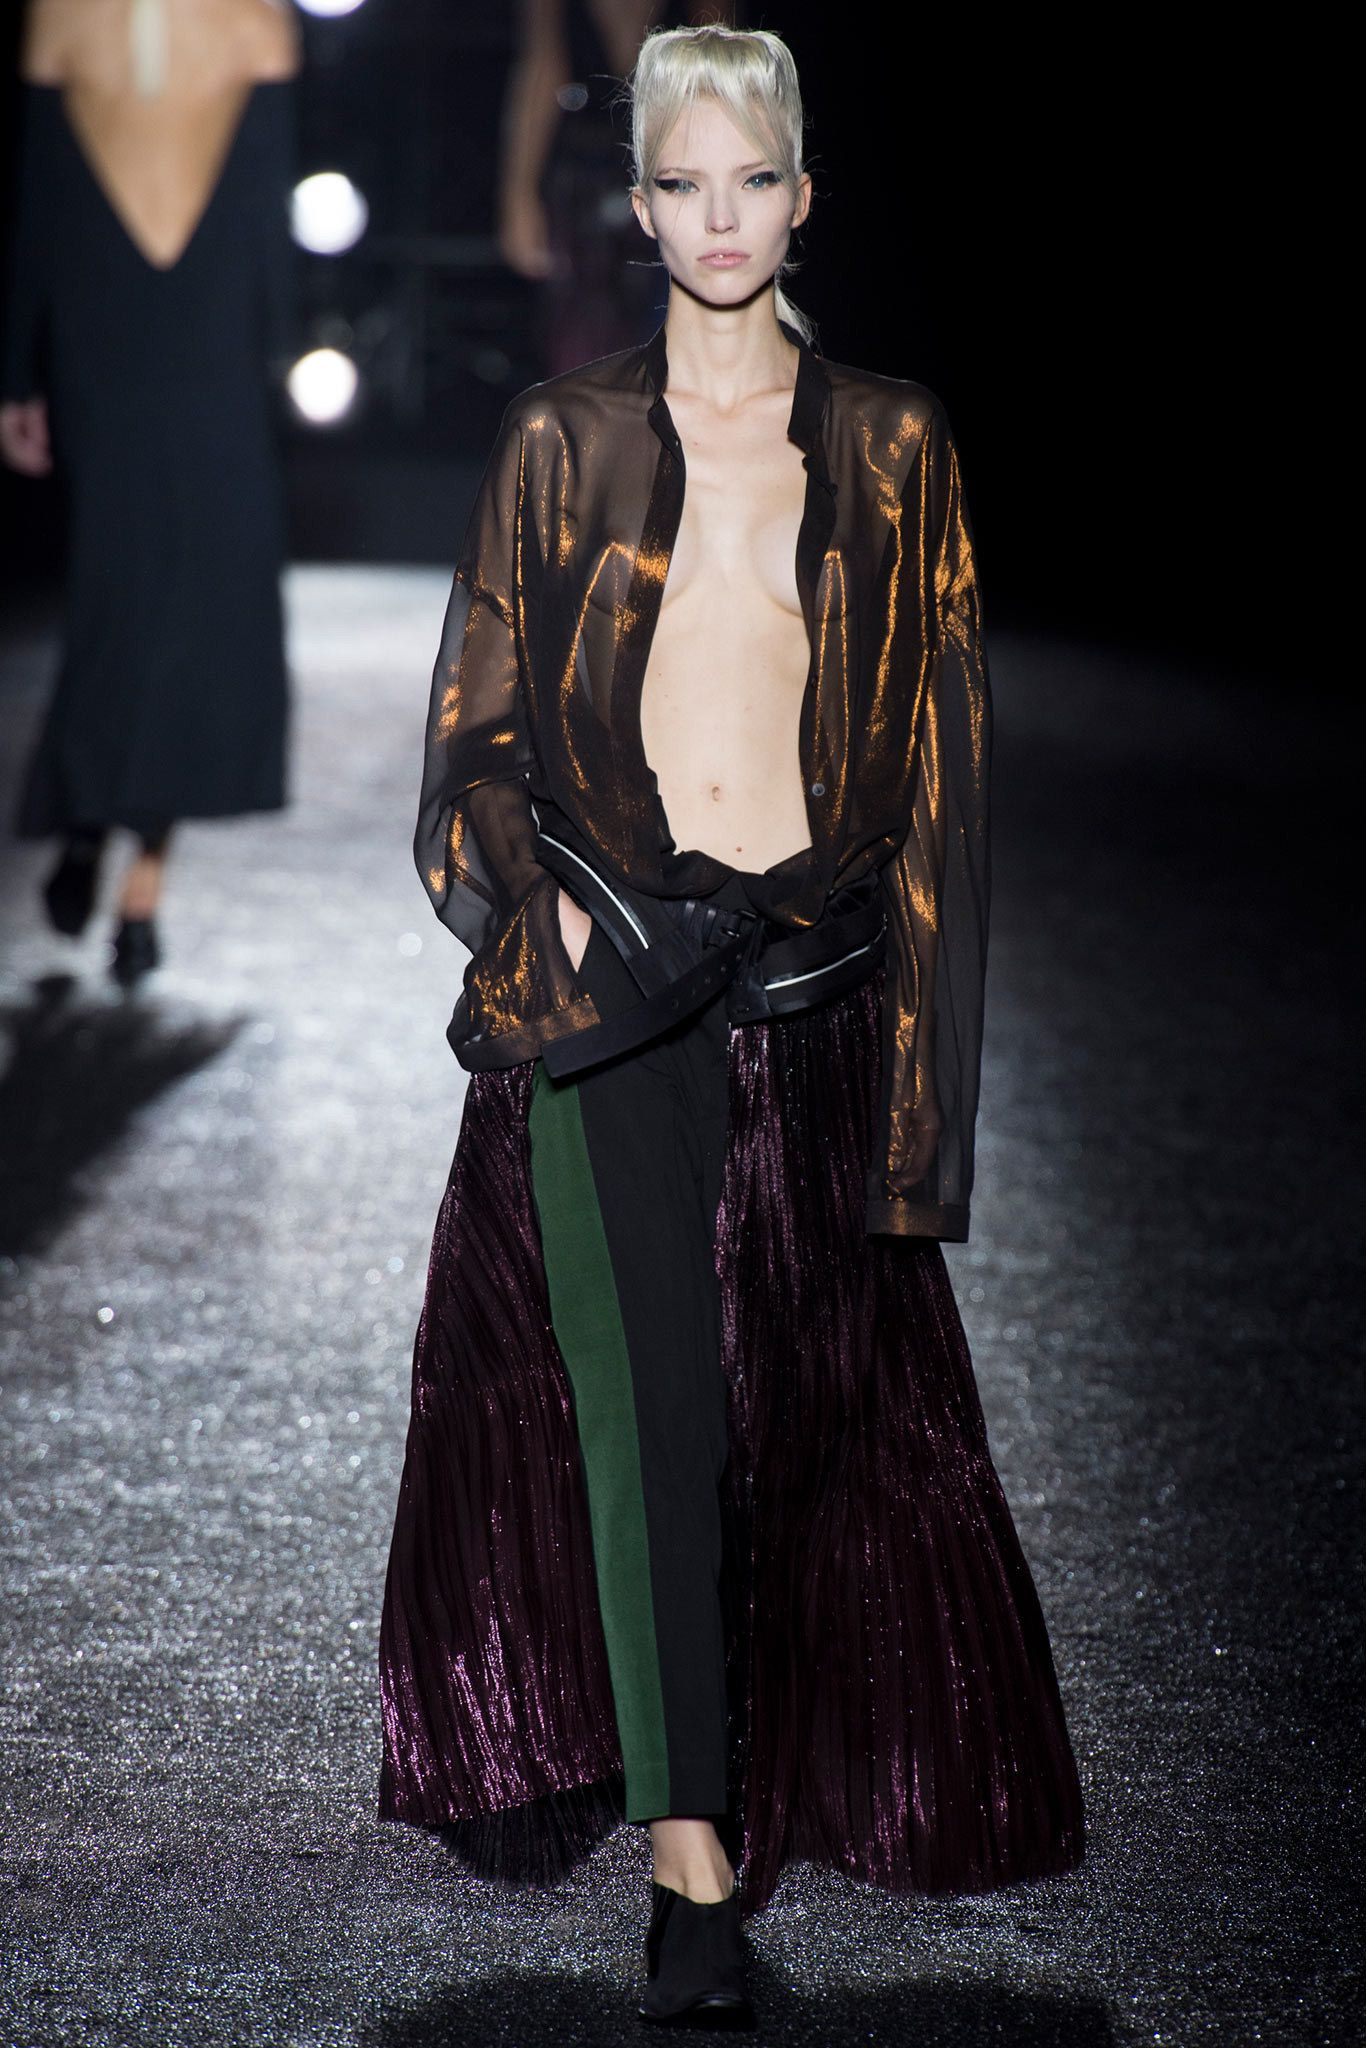 Haider Ackermann Spring 2014 Ready-to-Wear Fashion Show - Auguste Abeliunaite